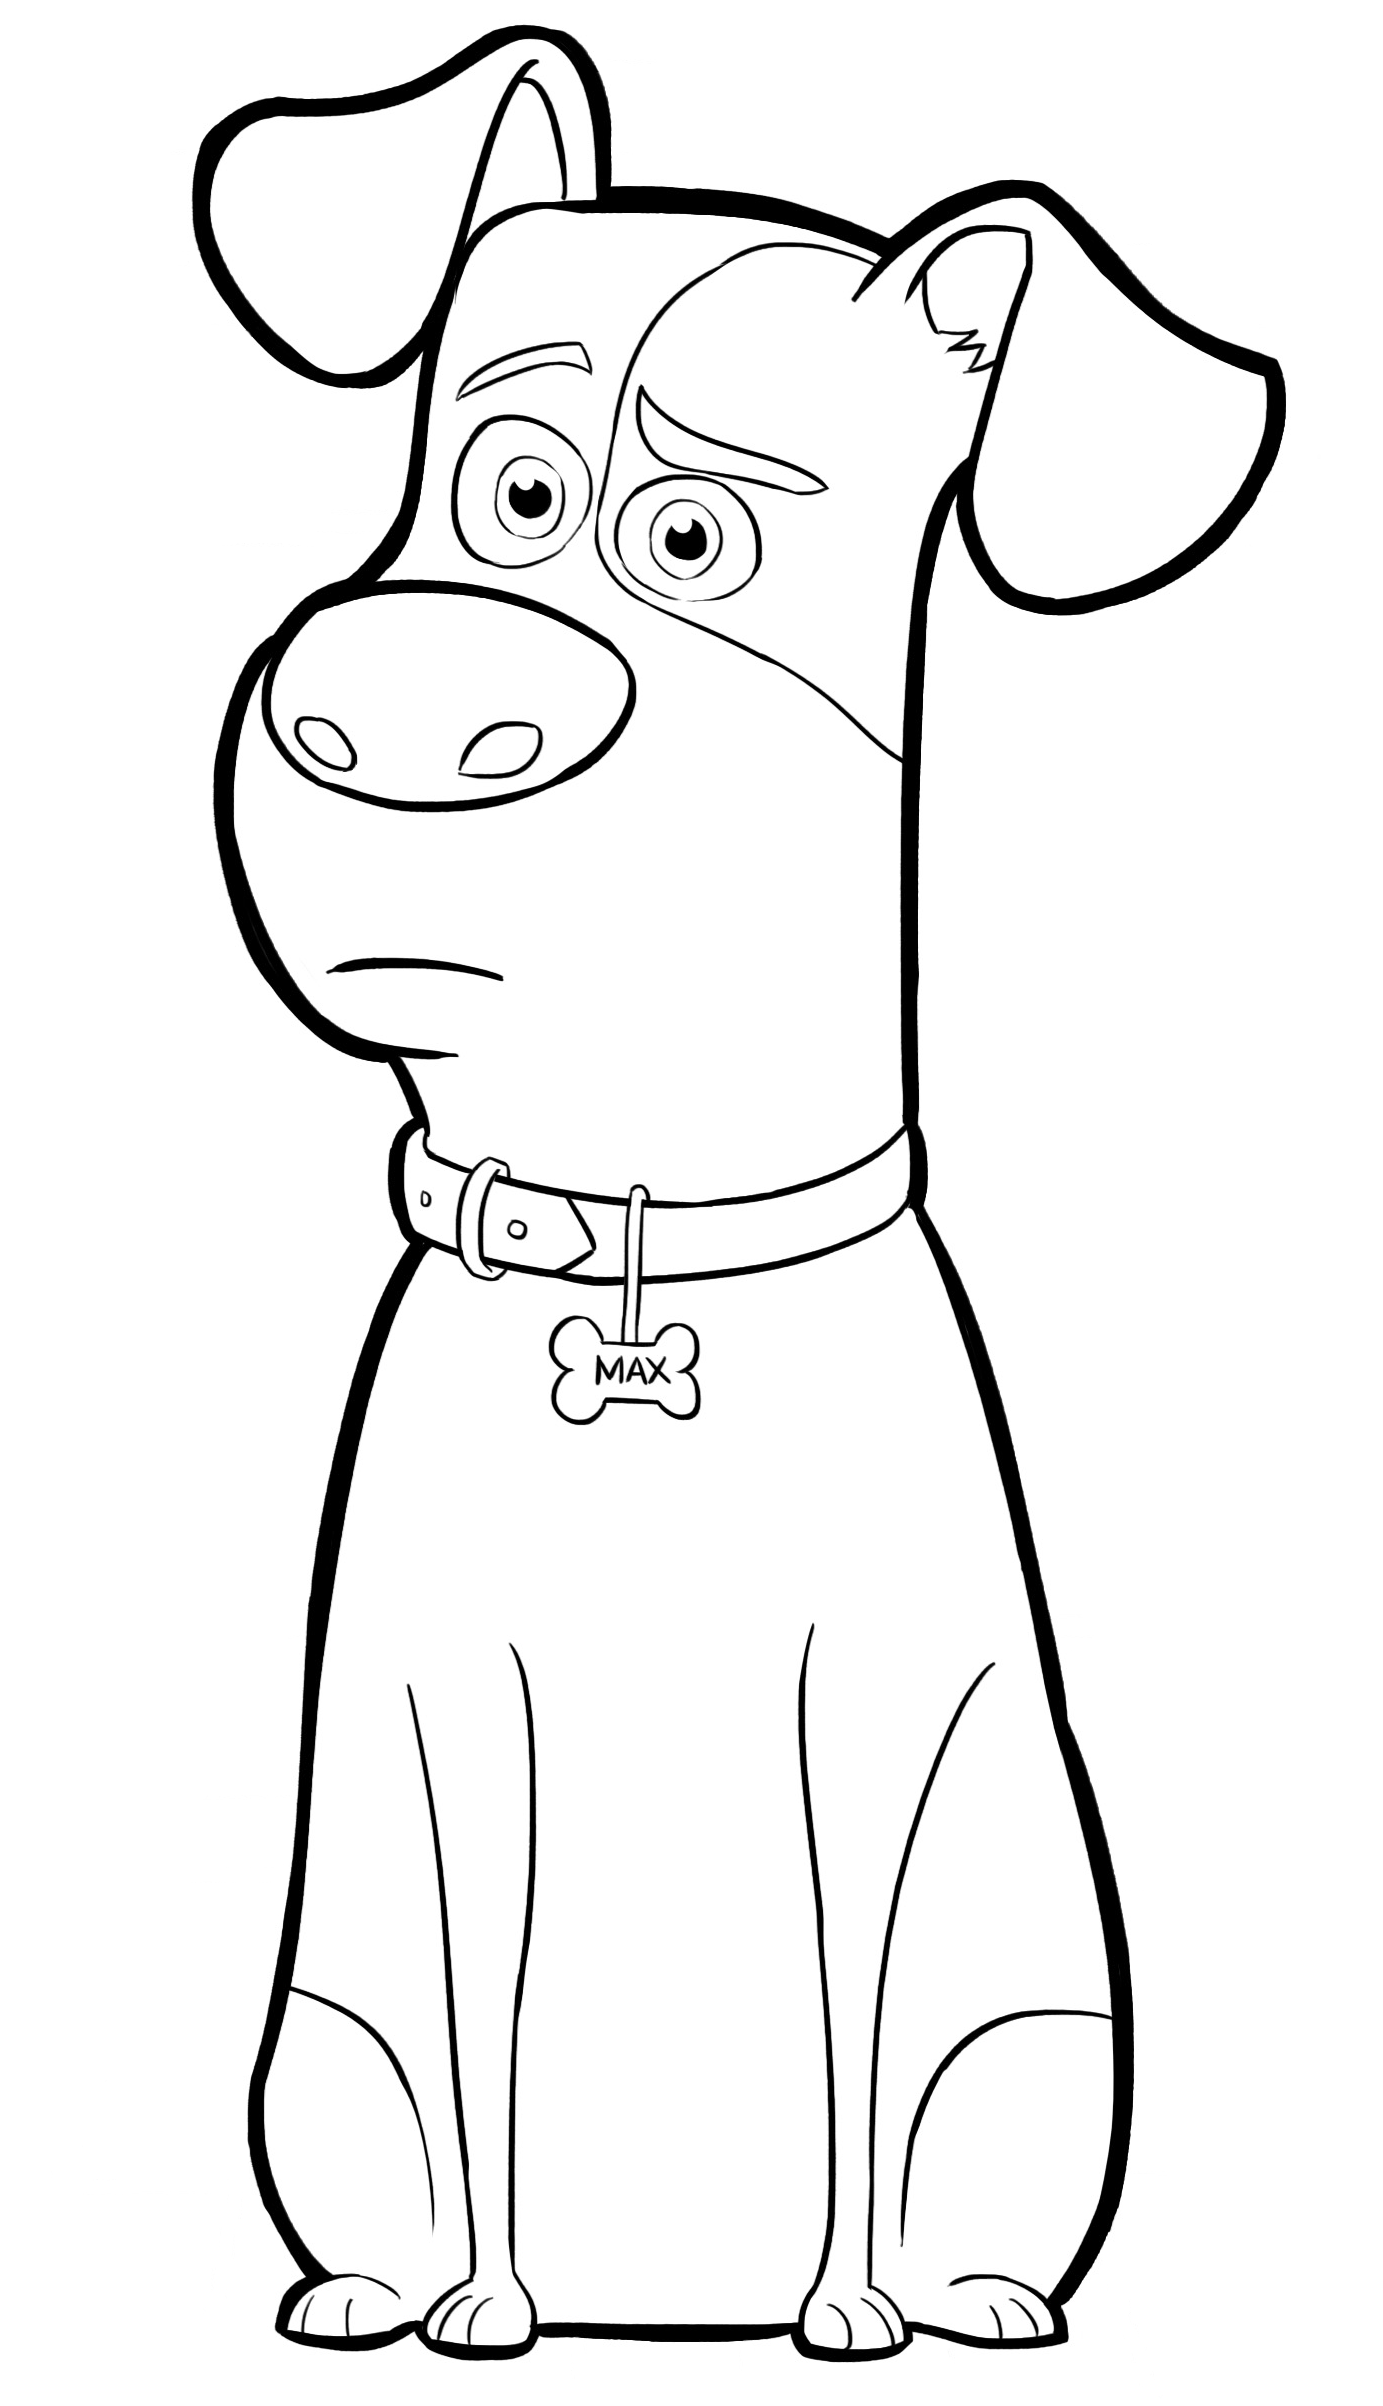 childrens animal colouring books funny dog with bone animal coloring page for kids animal books childrens colouring animal